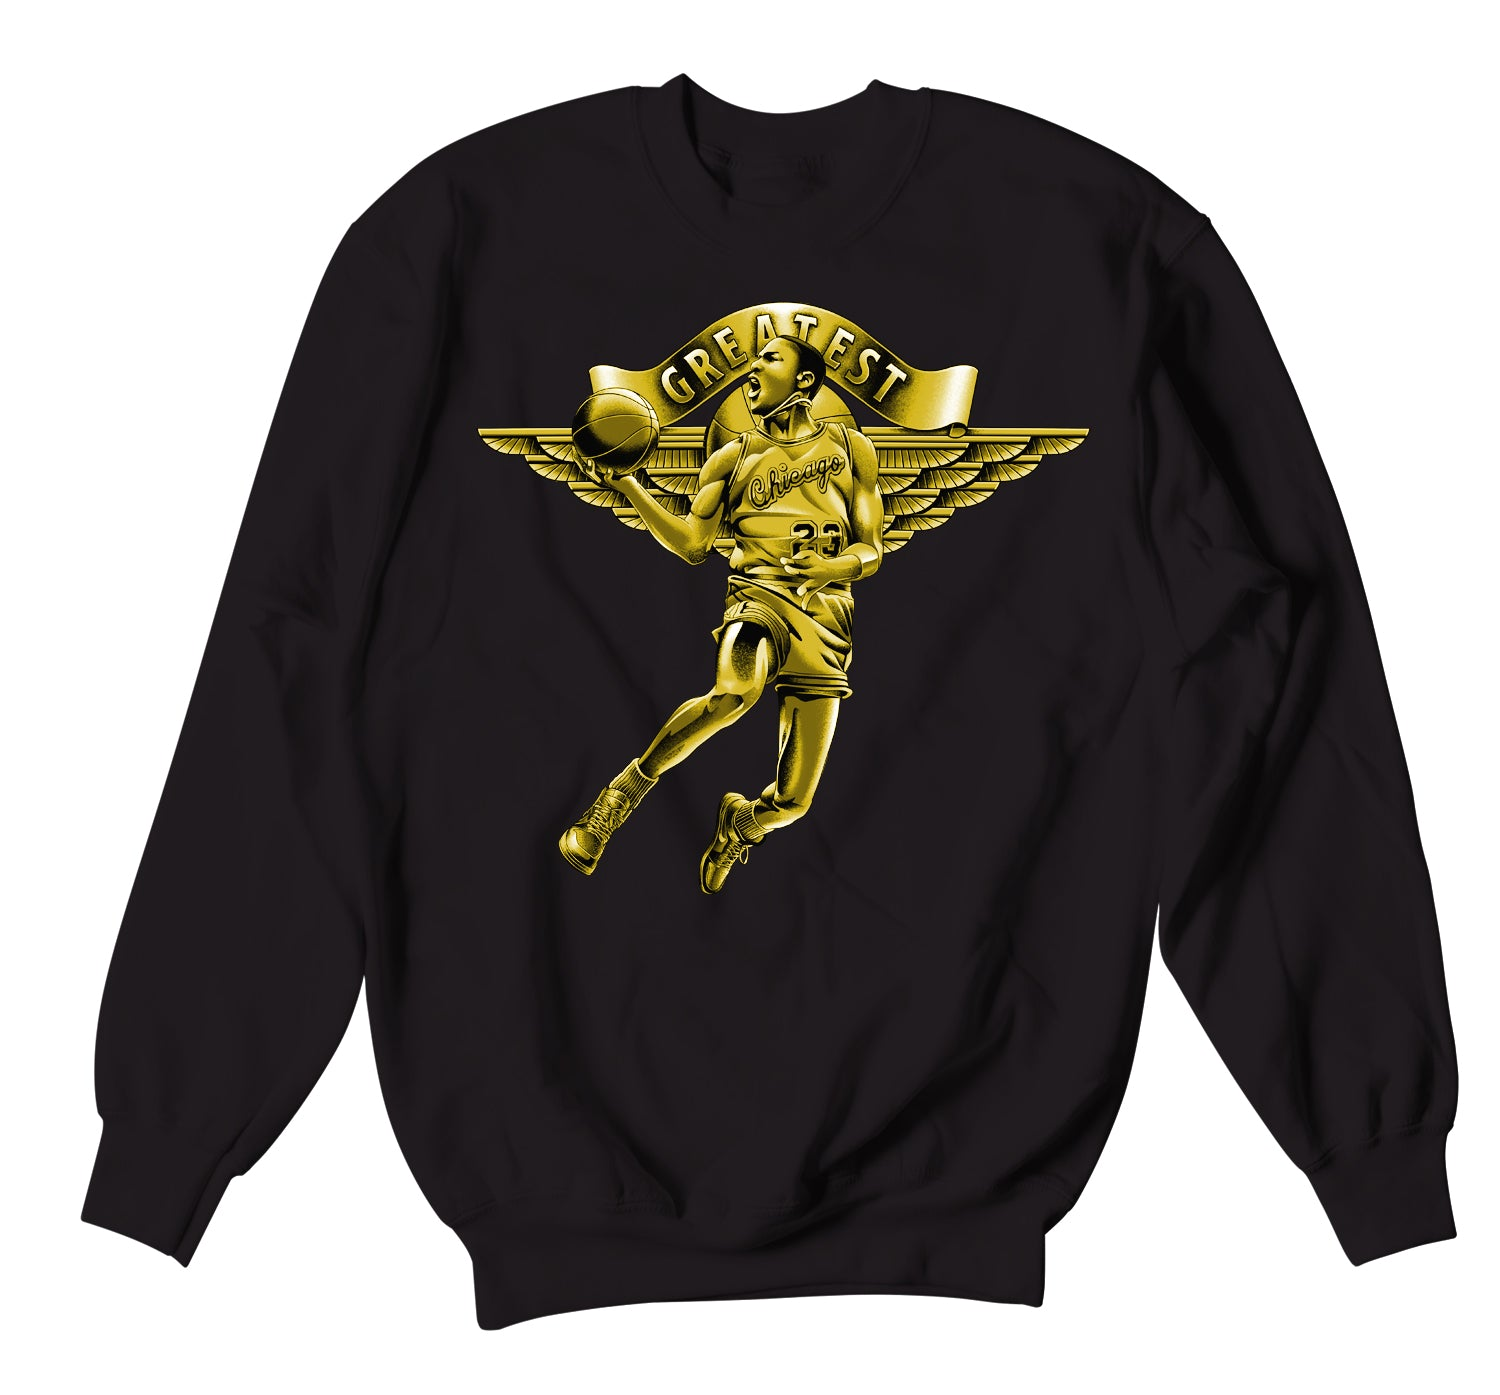 Black Gold Jordan 1 sneaker collection matching with guys tcrewneck sweaters